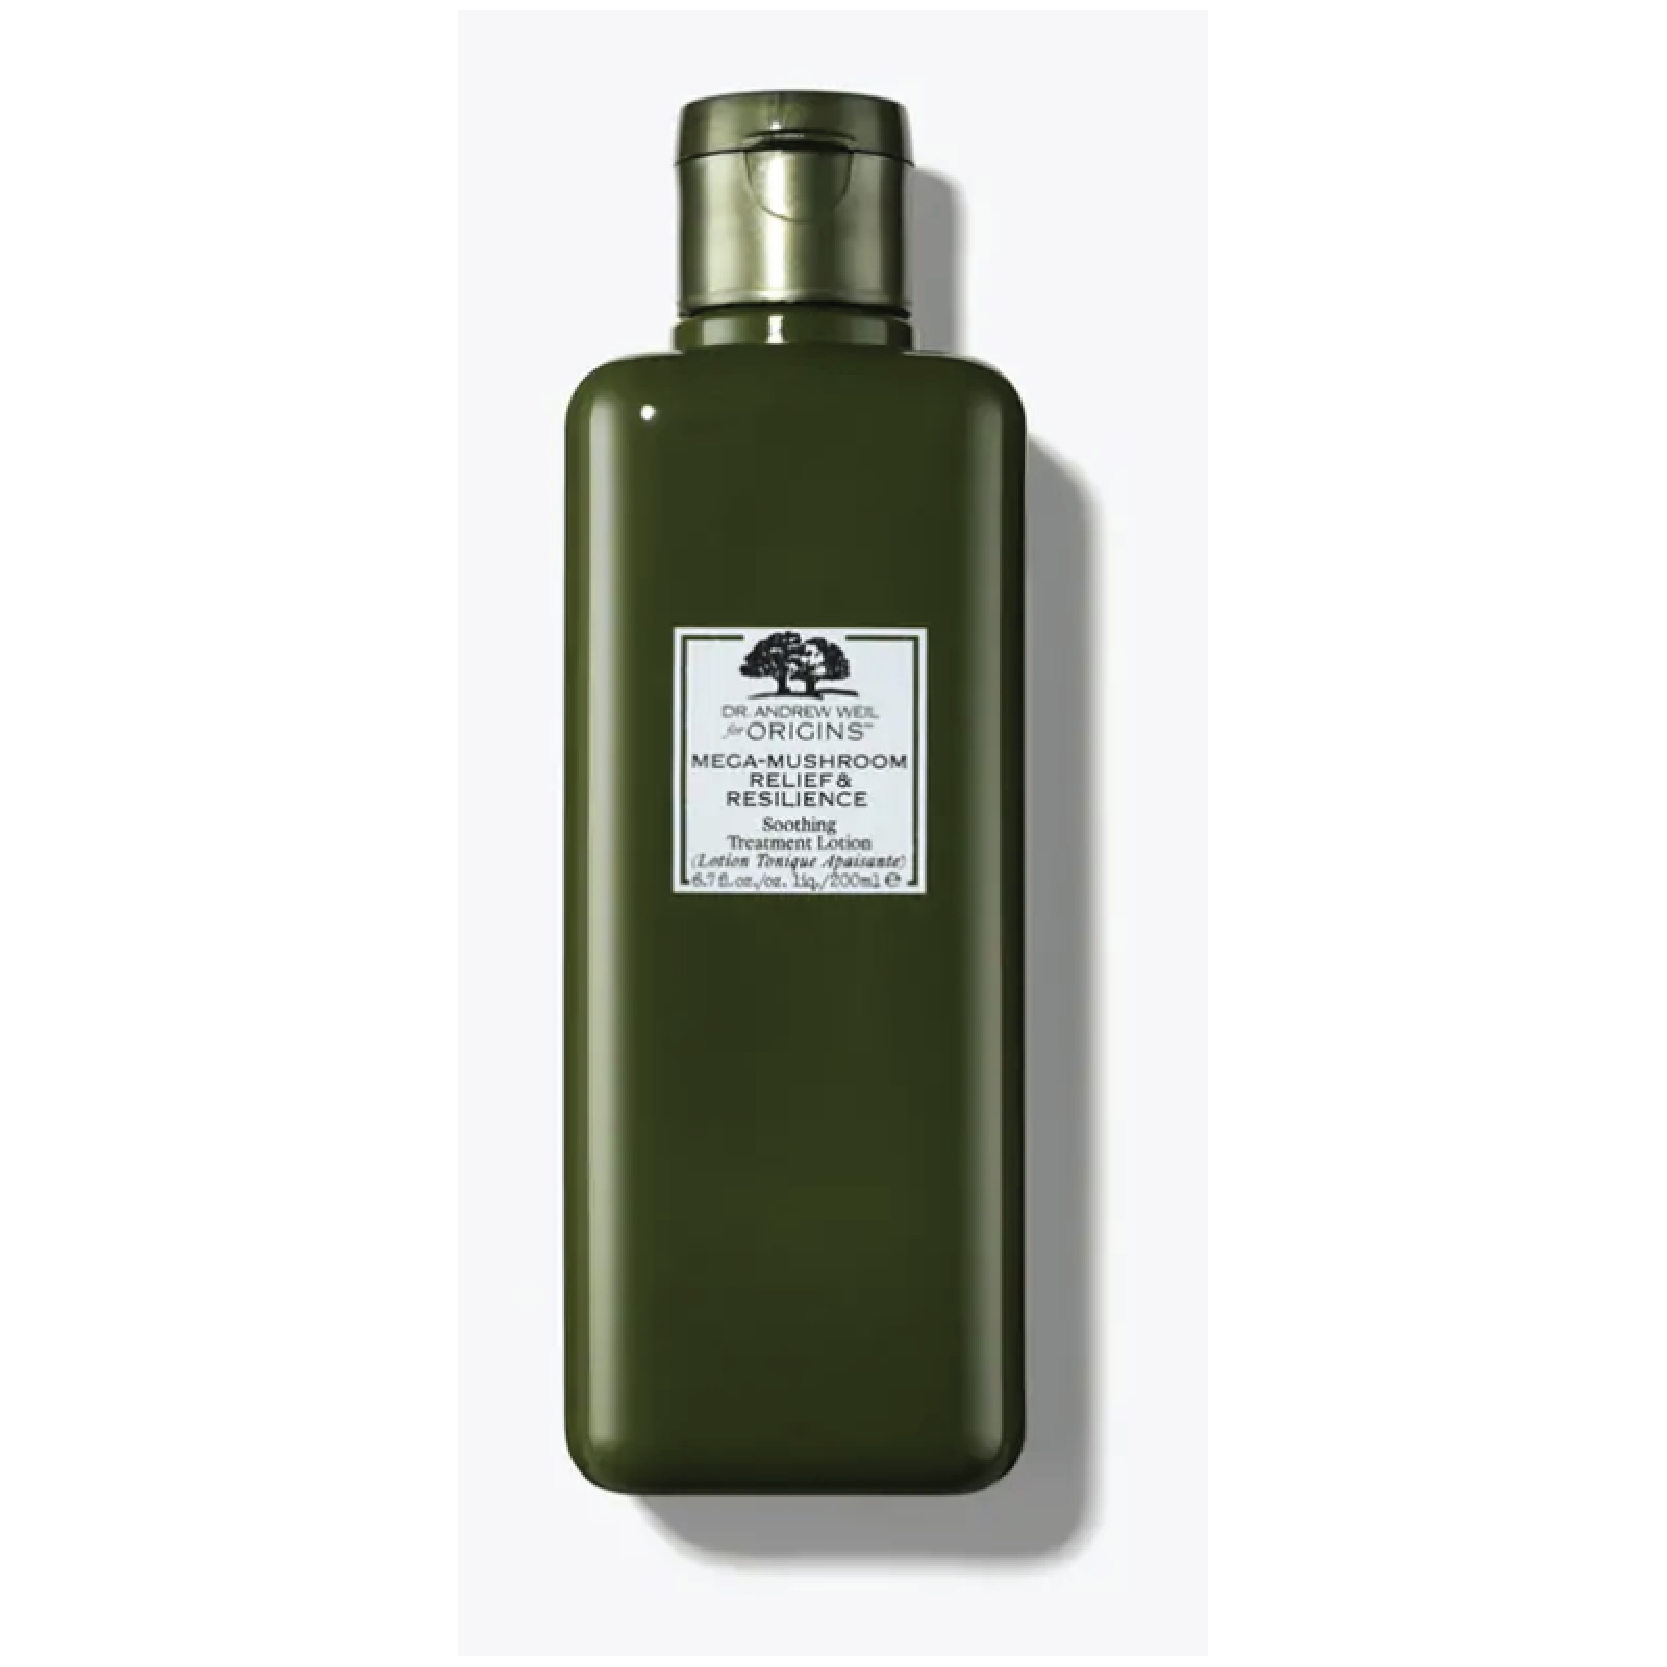 Dr. Andrew Weil x Origins Mega Mushroom Relief & Resilience Soothing Treatment Lotion - $34 at OriginsKnow someone suffering from eczema? This soothing and gentle lotion is perfect for calming irritated skin and preventing further inflammation.